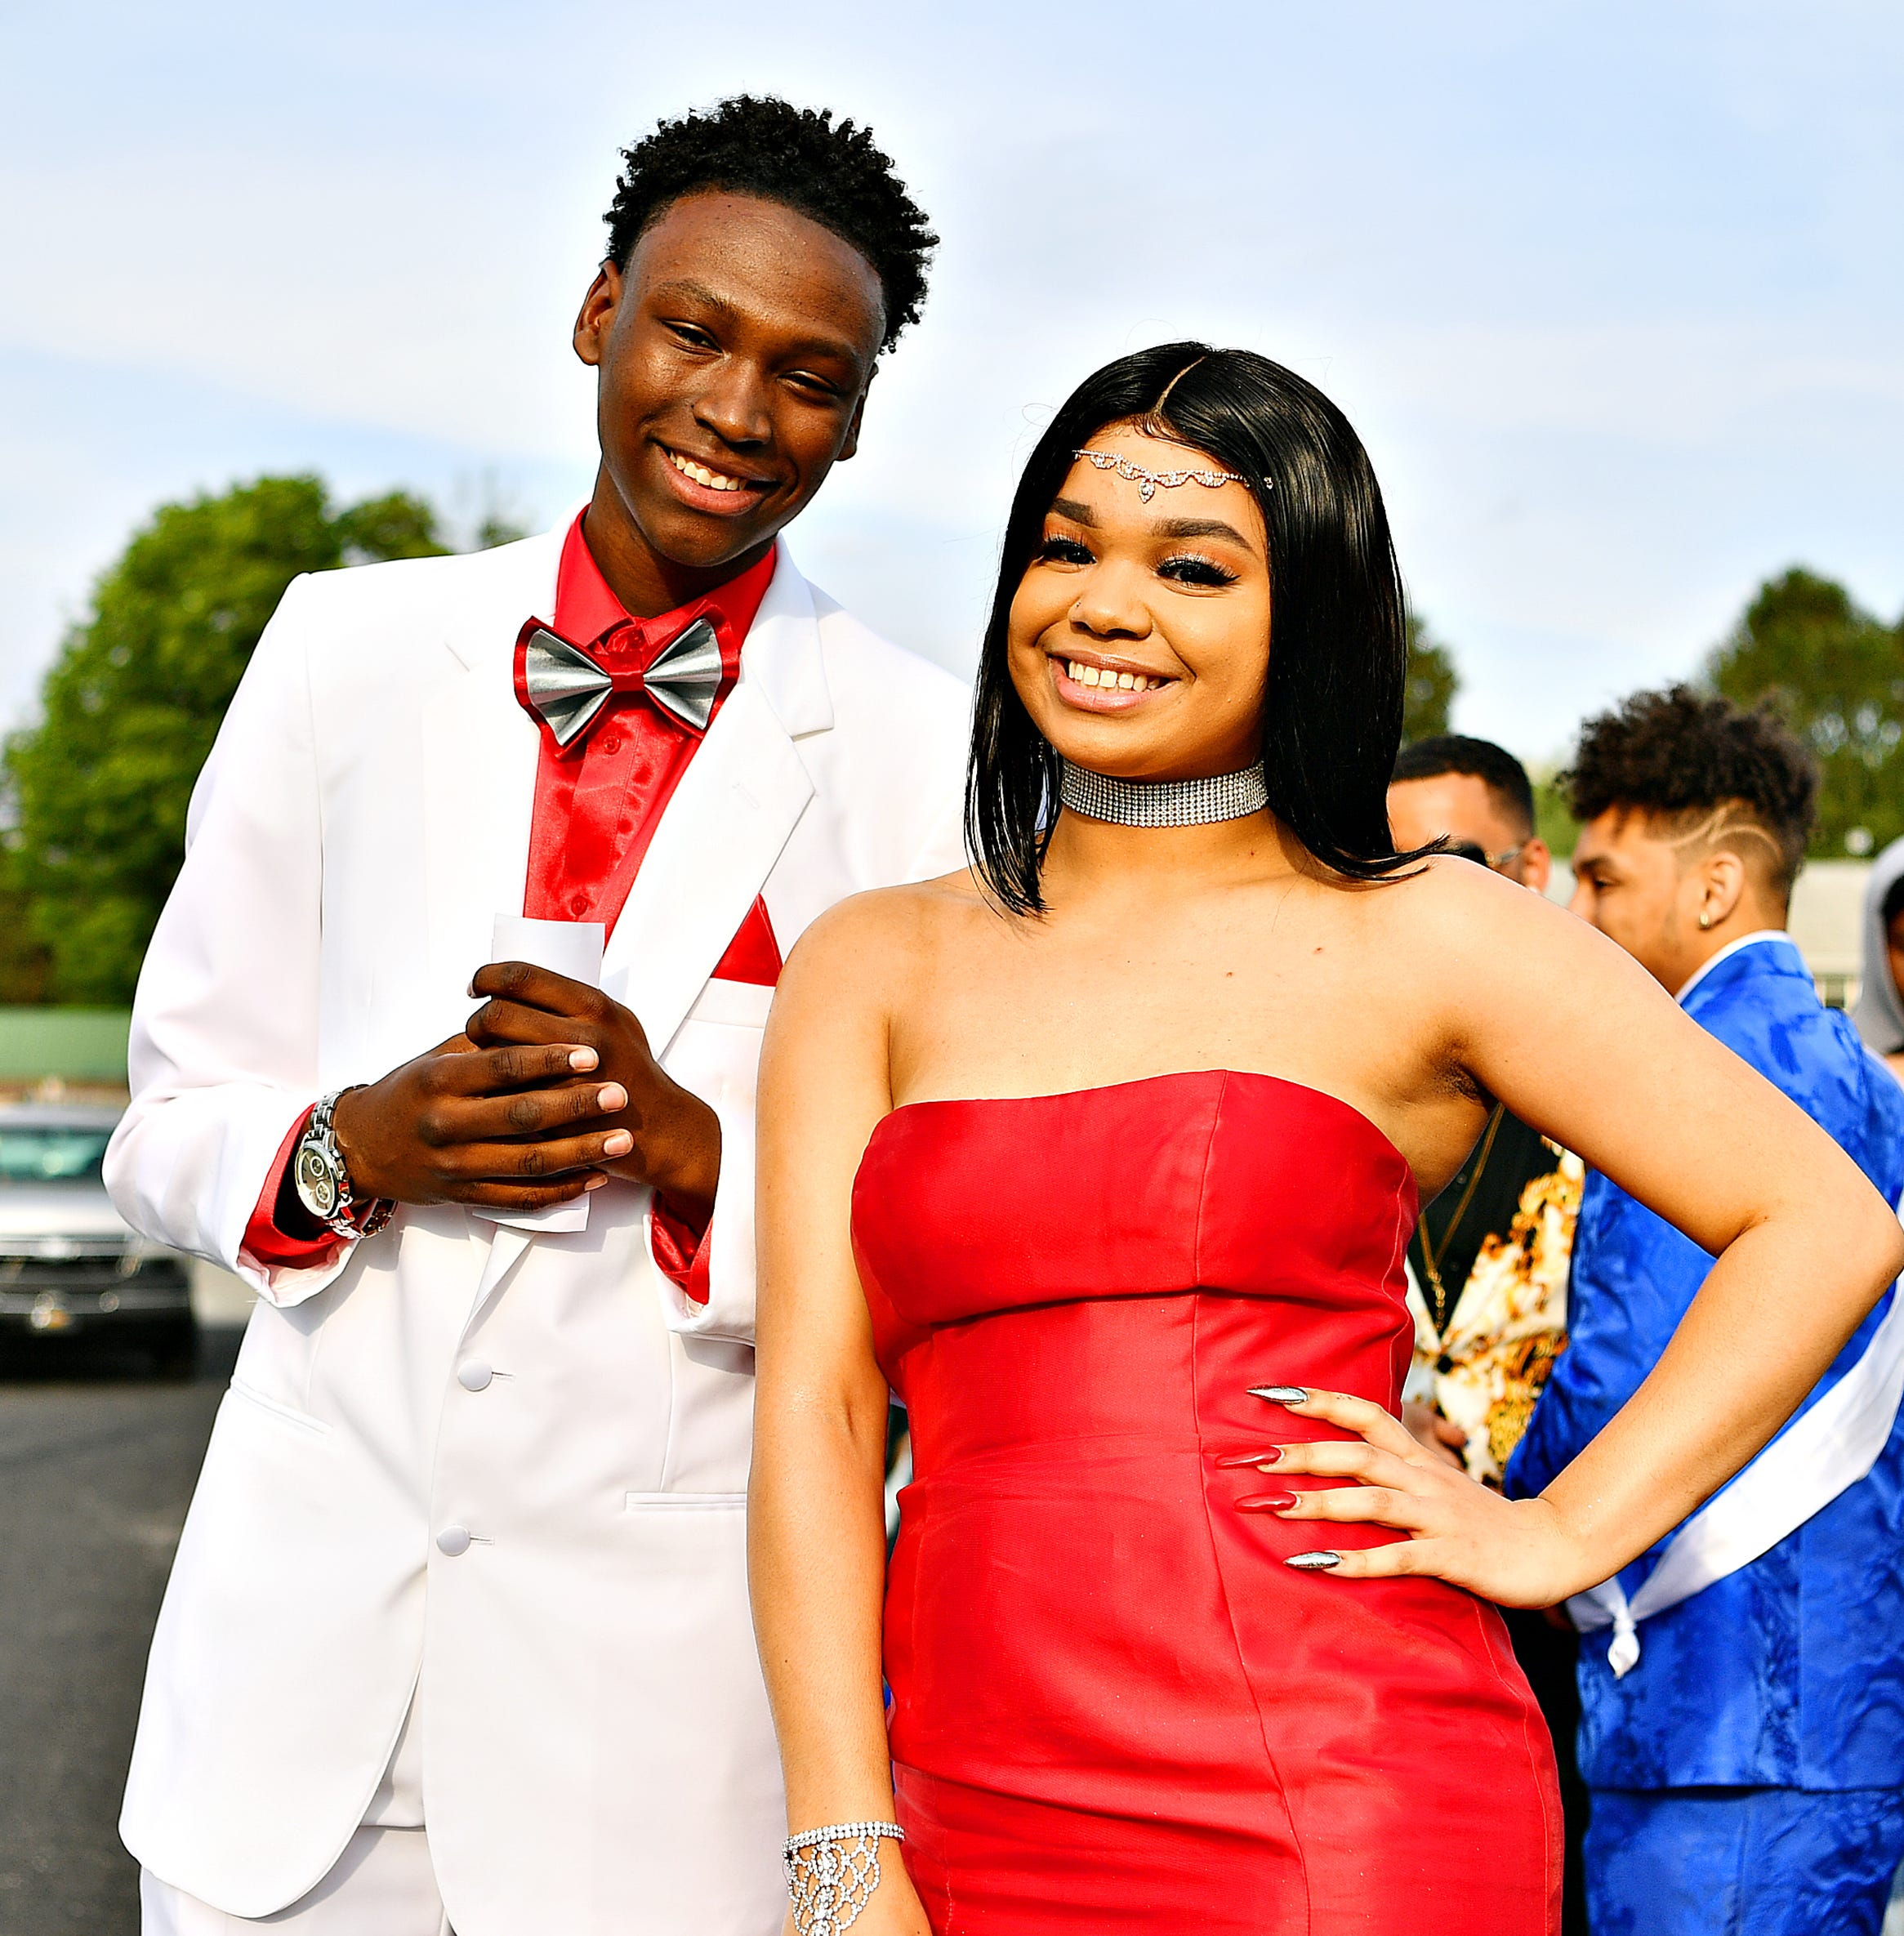 PHOTOS: York Tech Spartans celebrate 2019 prom at Wisehaven